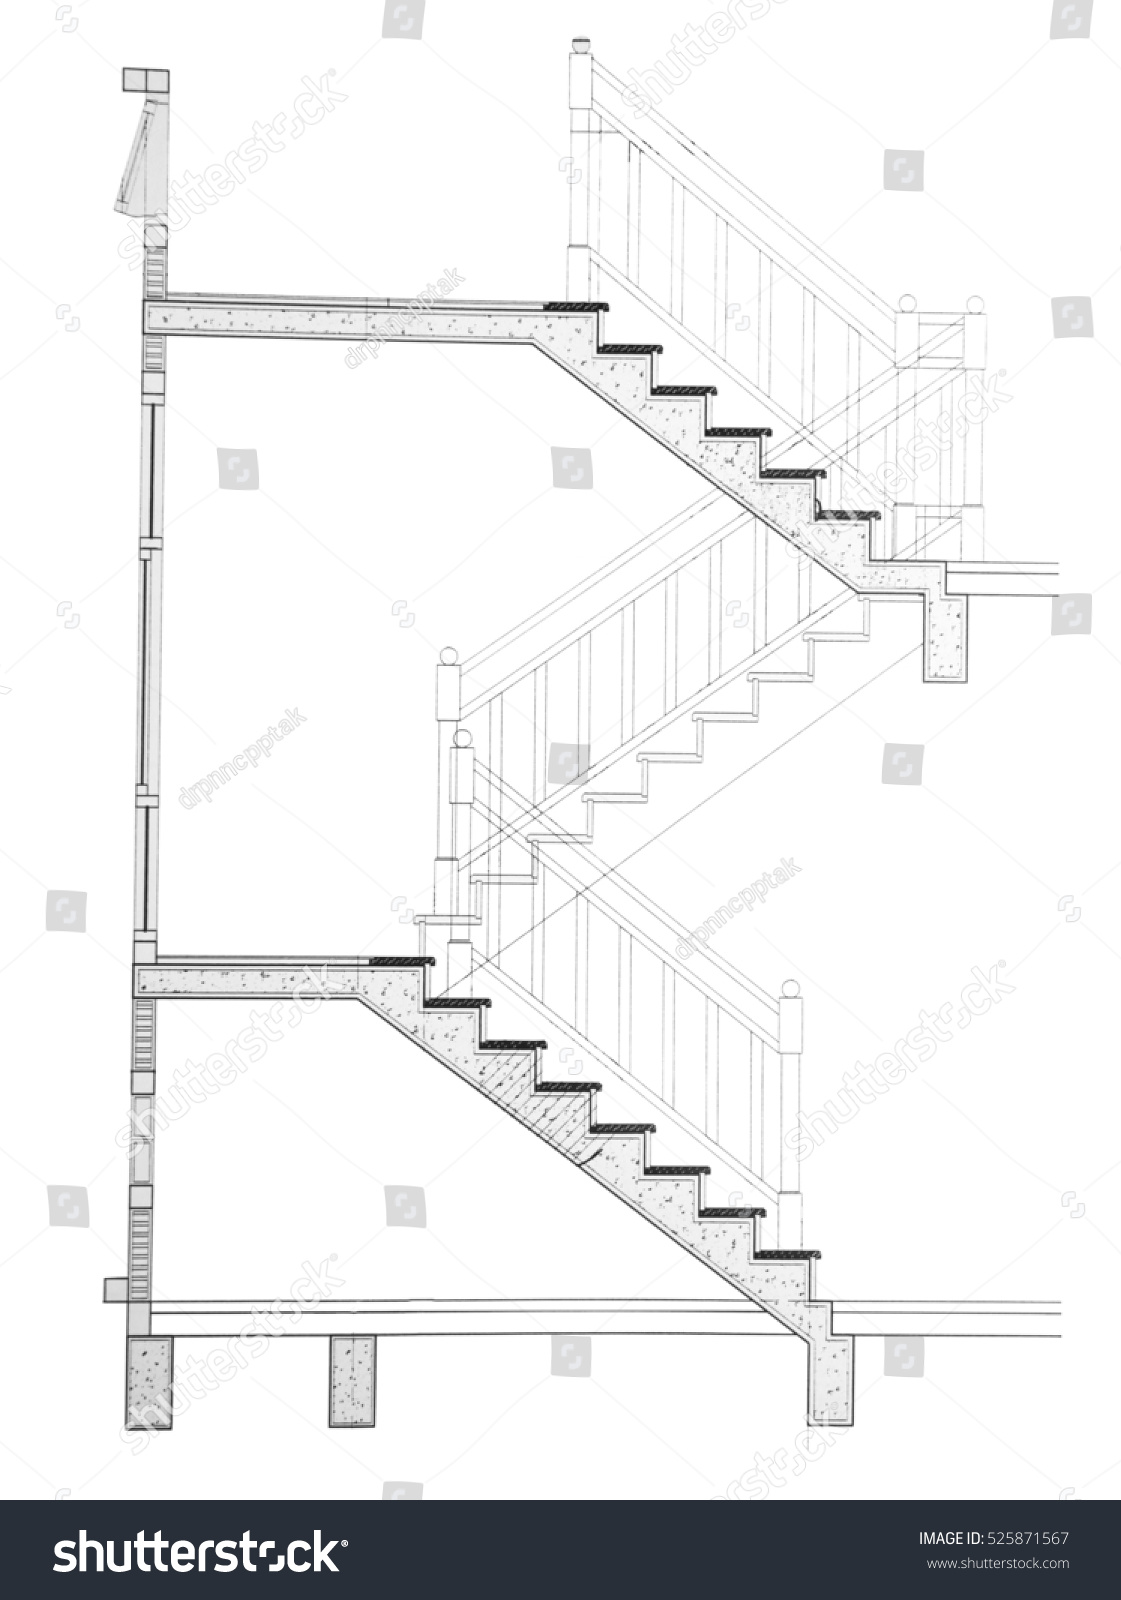 House Plan Section Cut Stair Stock Illustration 525871567 Shutterstock Staircase Diagram Classic Stairs And Remodeling Of